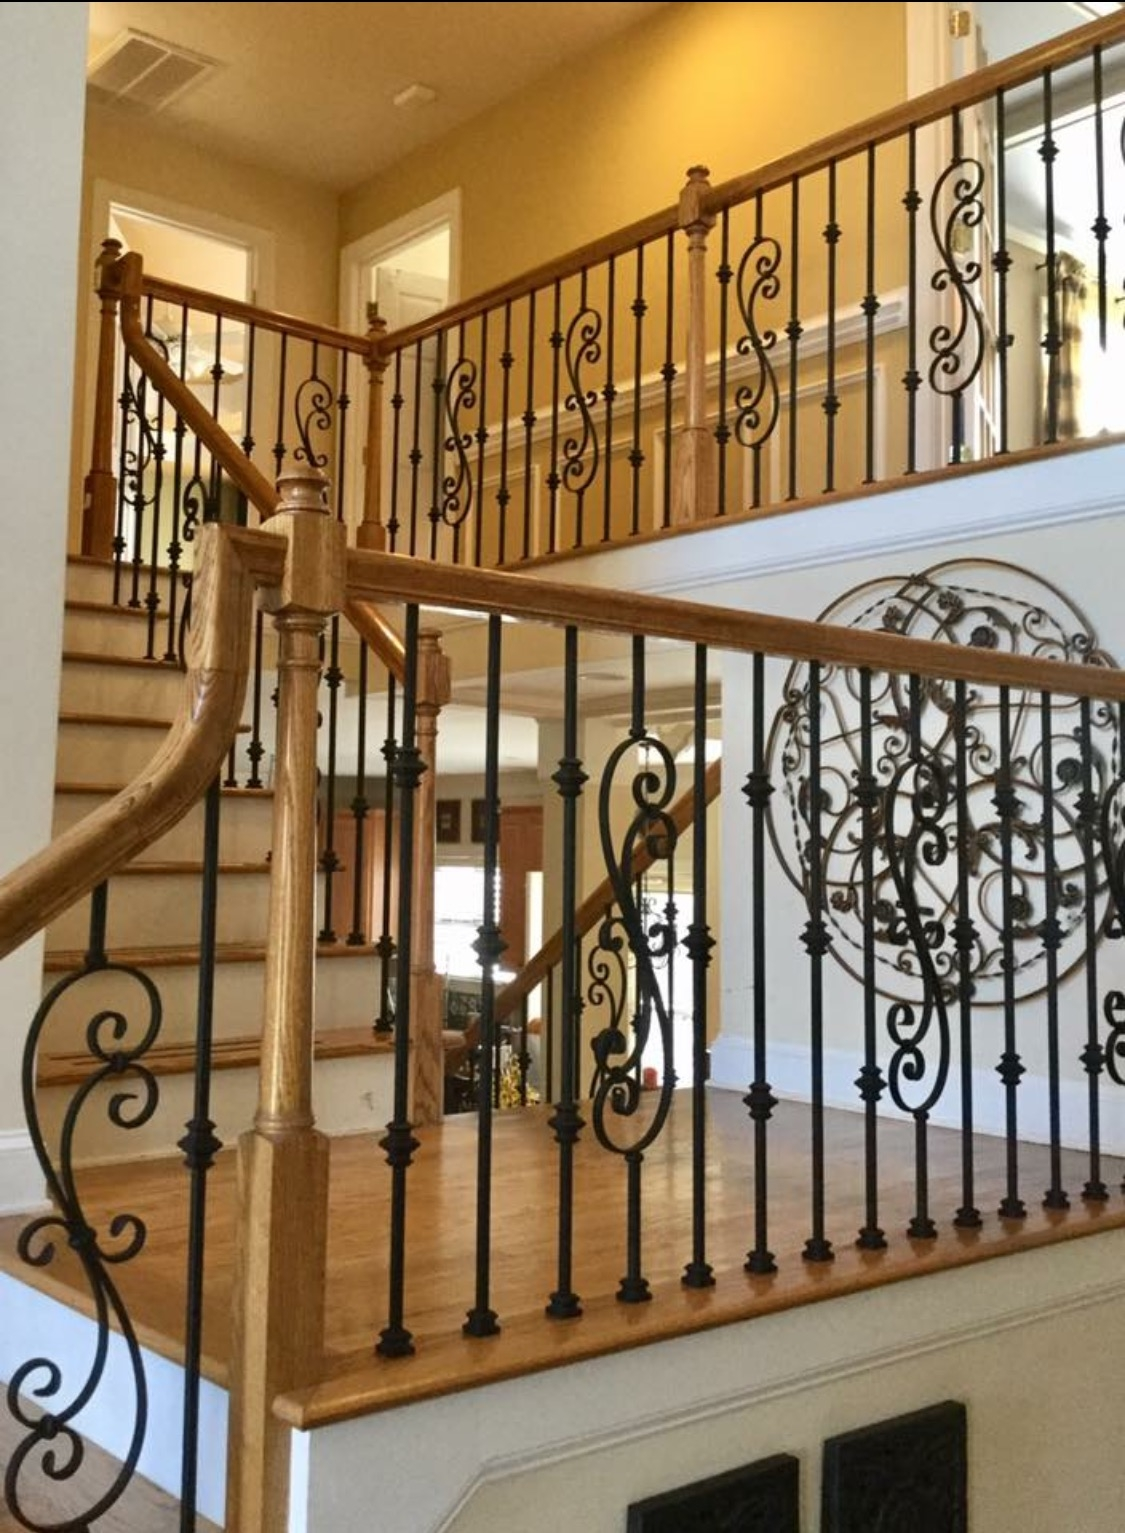 Master Fabrication — Wrought Iron Staircase Design Center | Metal Railing Designs Stairs | Rot Iron Staircase | Step | Luxury | Creative Outdoor Stair | Curved Railing